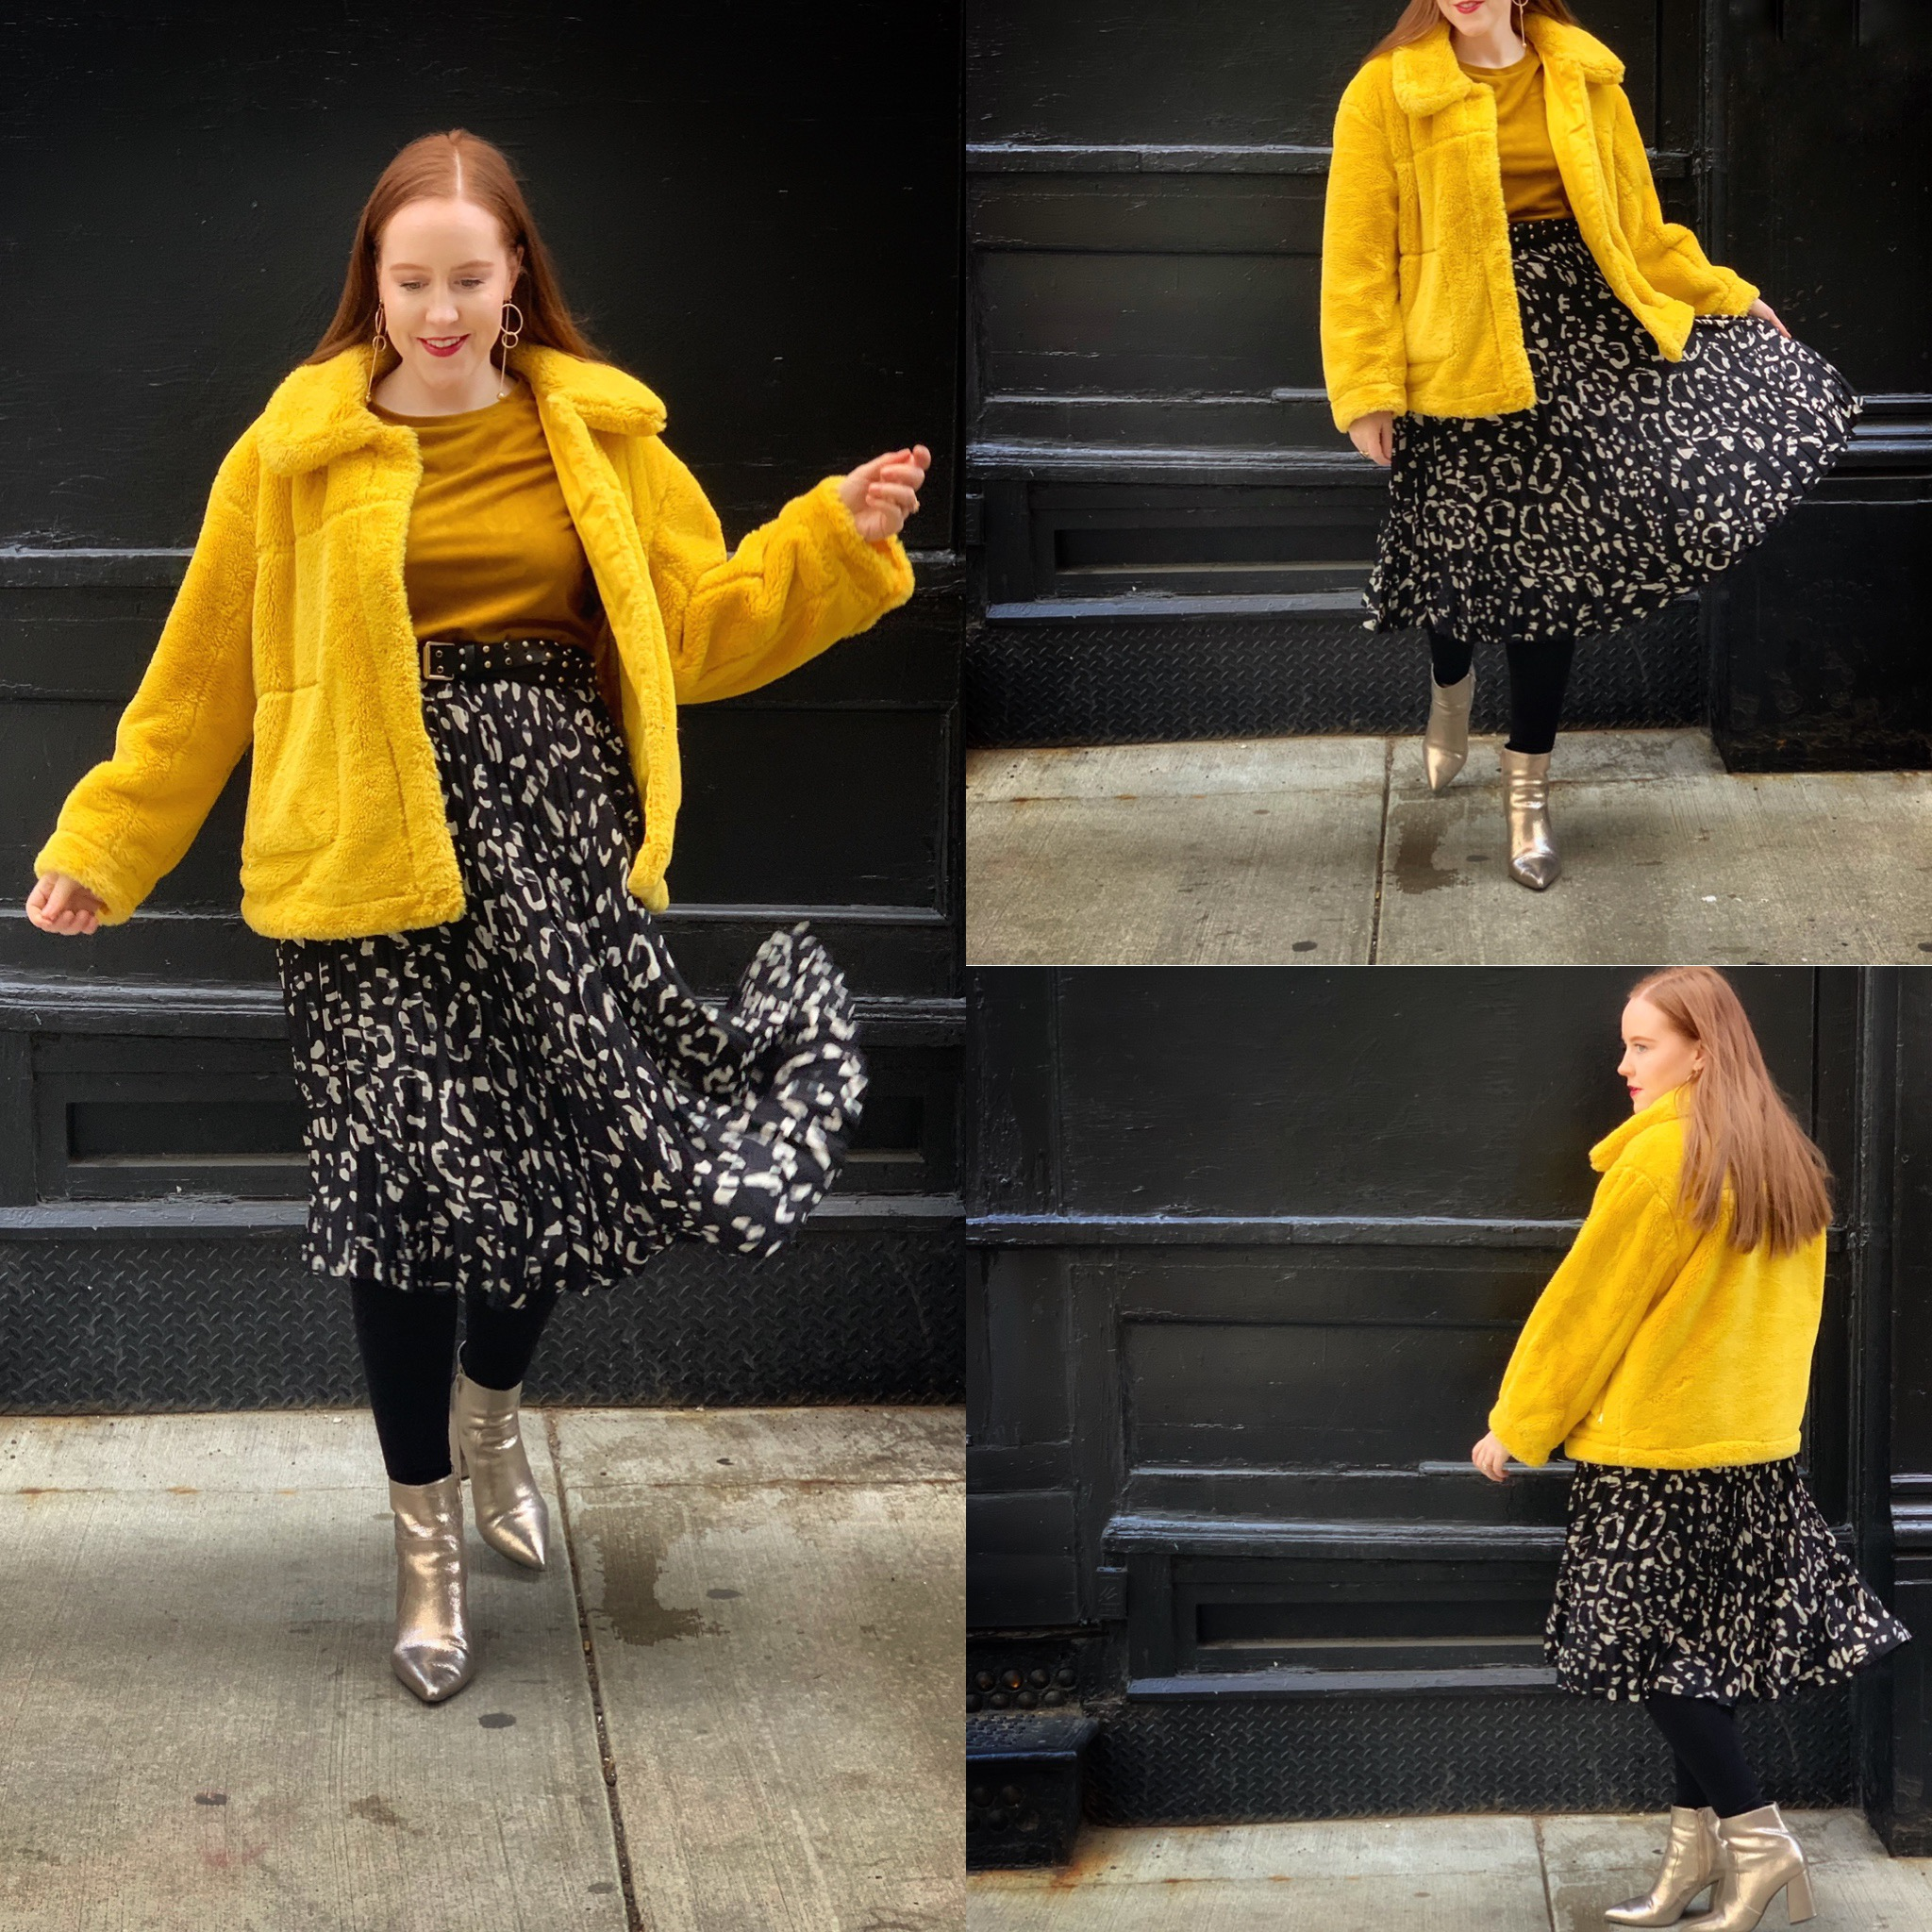 Skirt: H&M (out of stock), similar    here   , this print is available as a dress    here     Top: (actually a dress) Zara (out of stock), similar    here   ,    here   , and    here     Belt:    Target     Boots: Gianni Bini from Dillard's (out of stock) similar    here